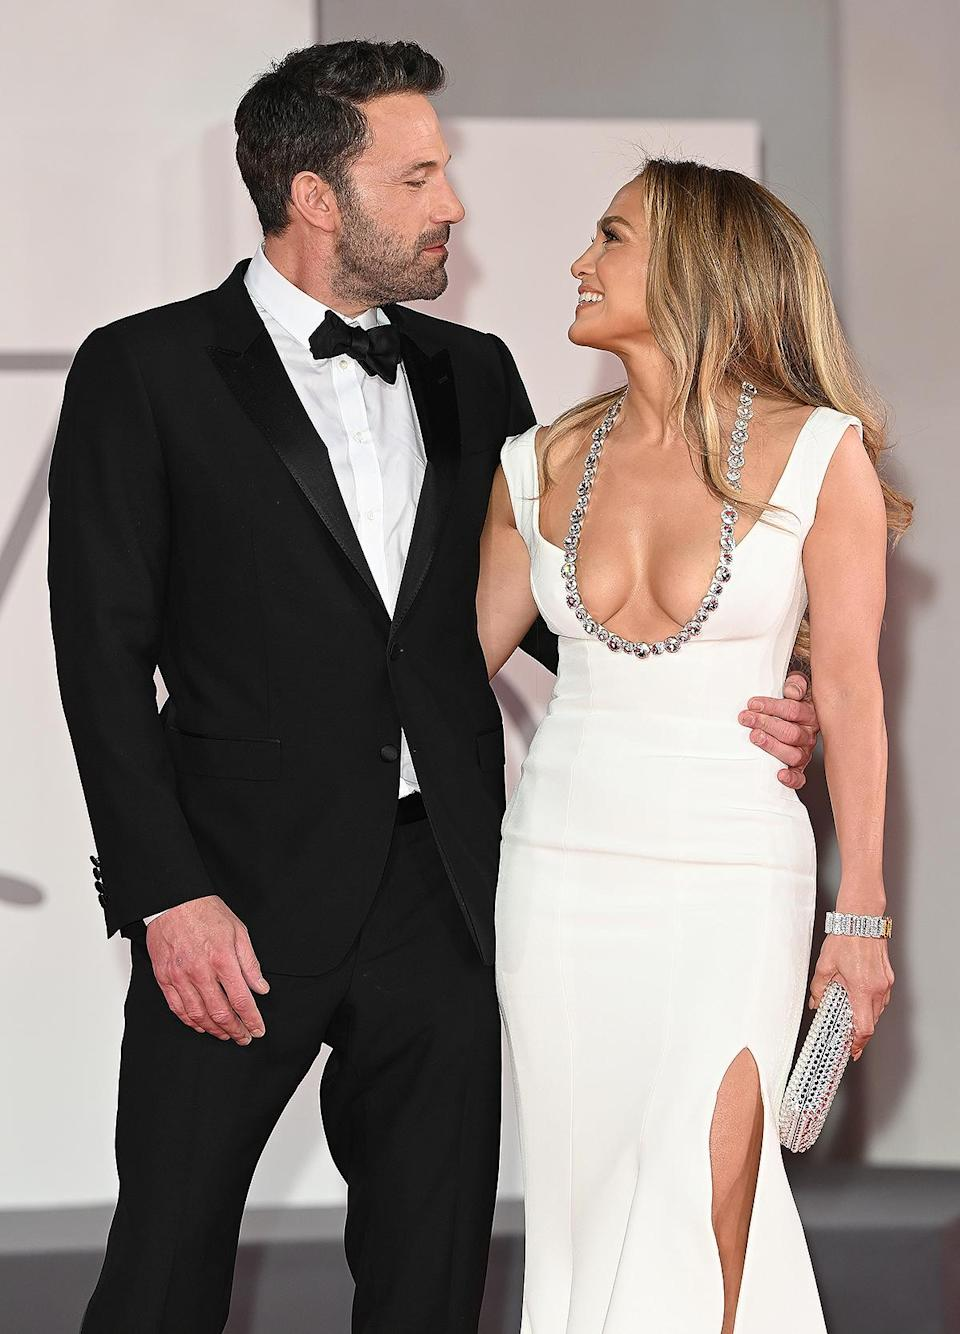 <p>The black tux. The white gown. The look of love. Is this photo setting off wedding bells in anyone else's head?! </p>